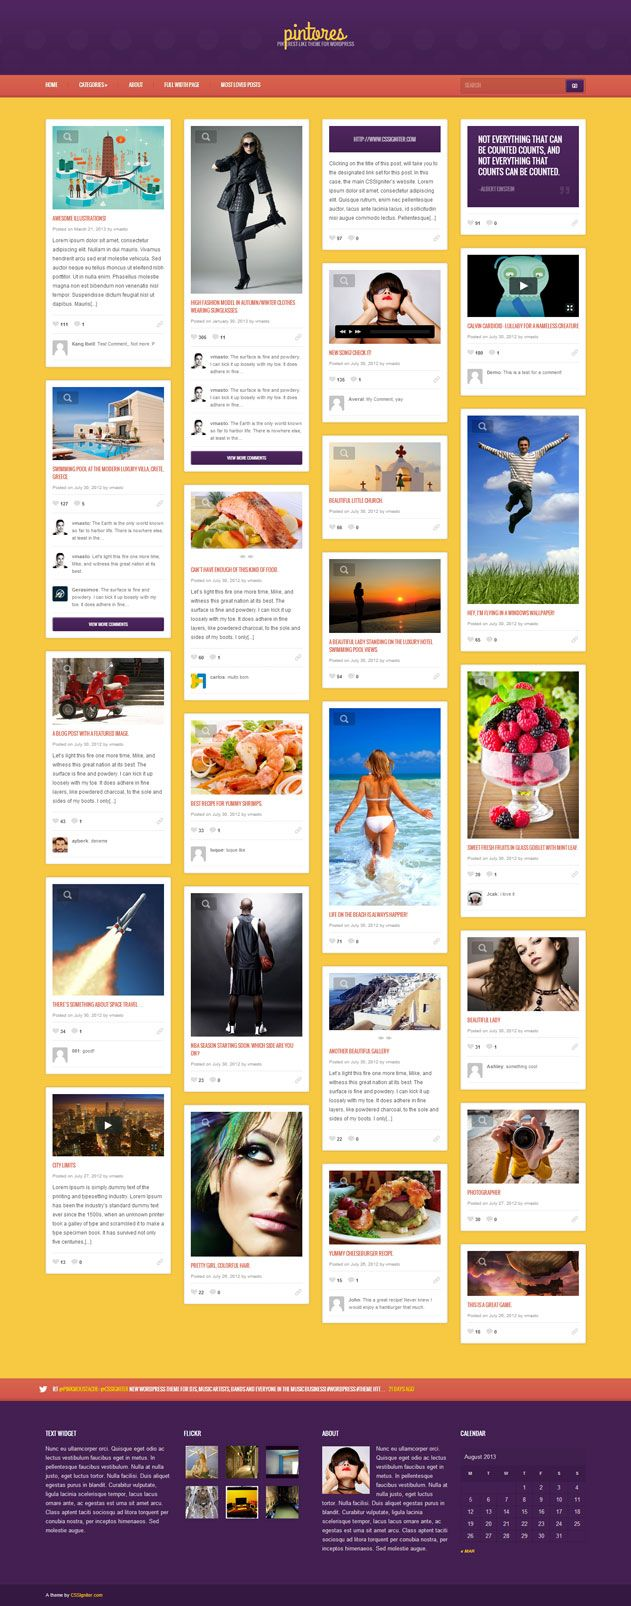 Pintores-Pinterest-like-Theme-for-WordPress